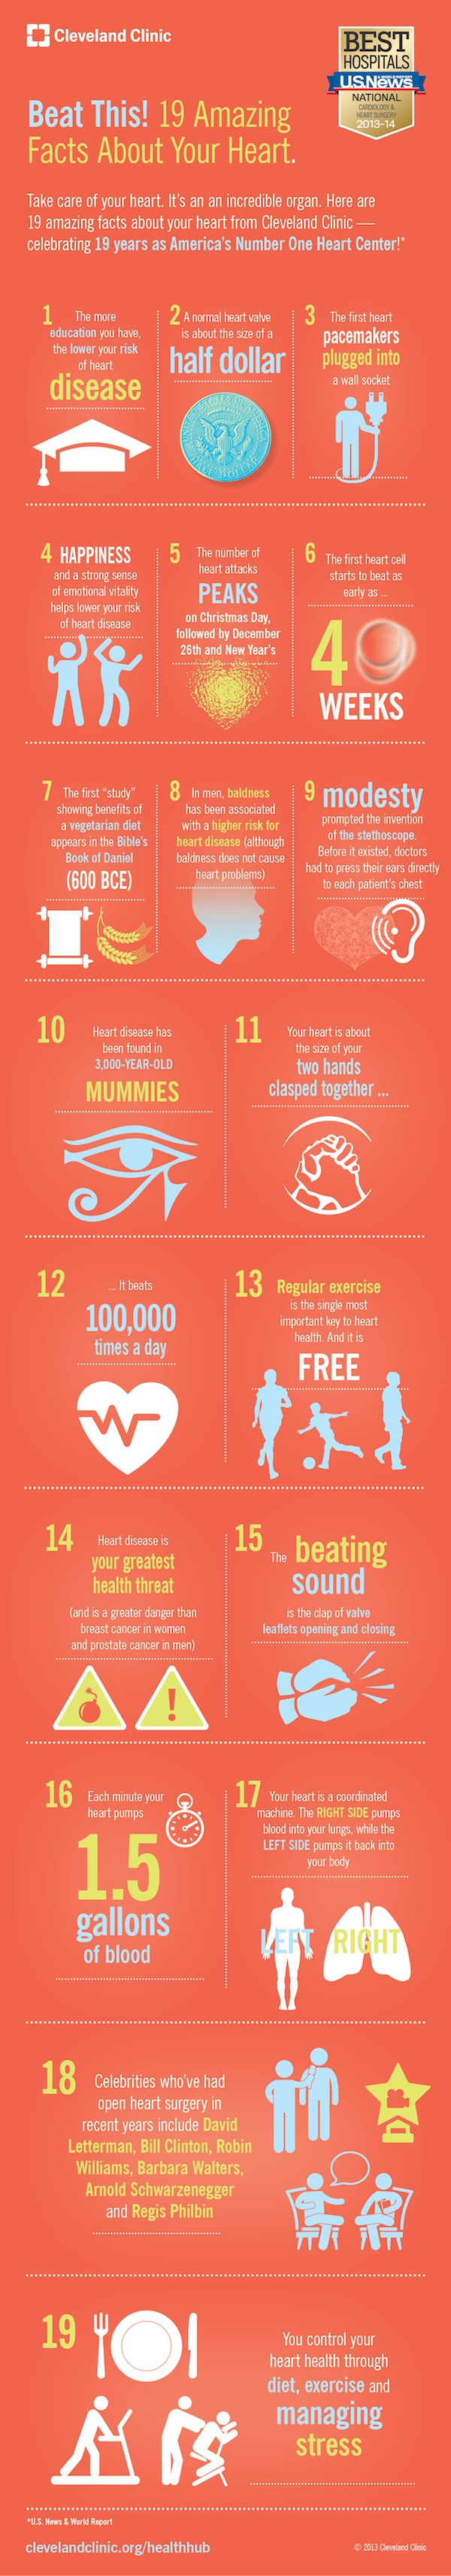 Facts-About-Your-Heart